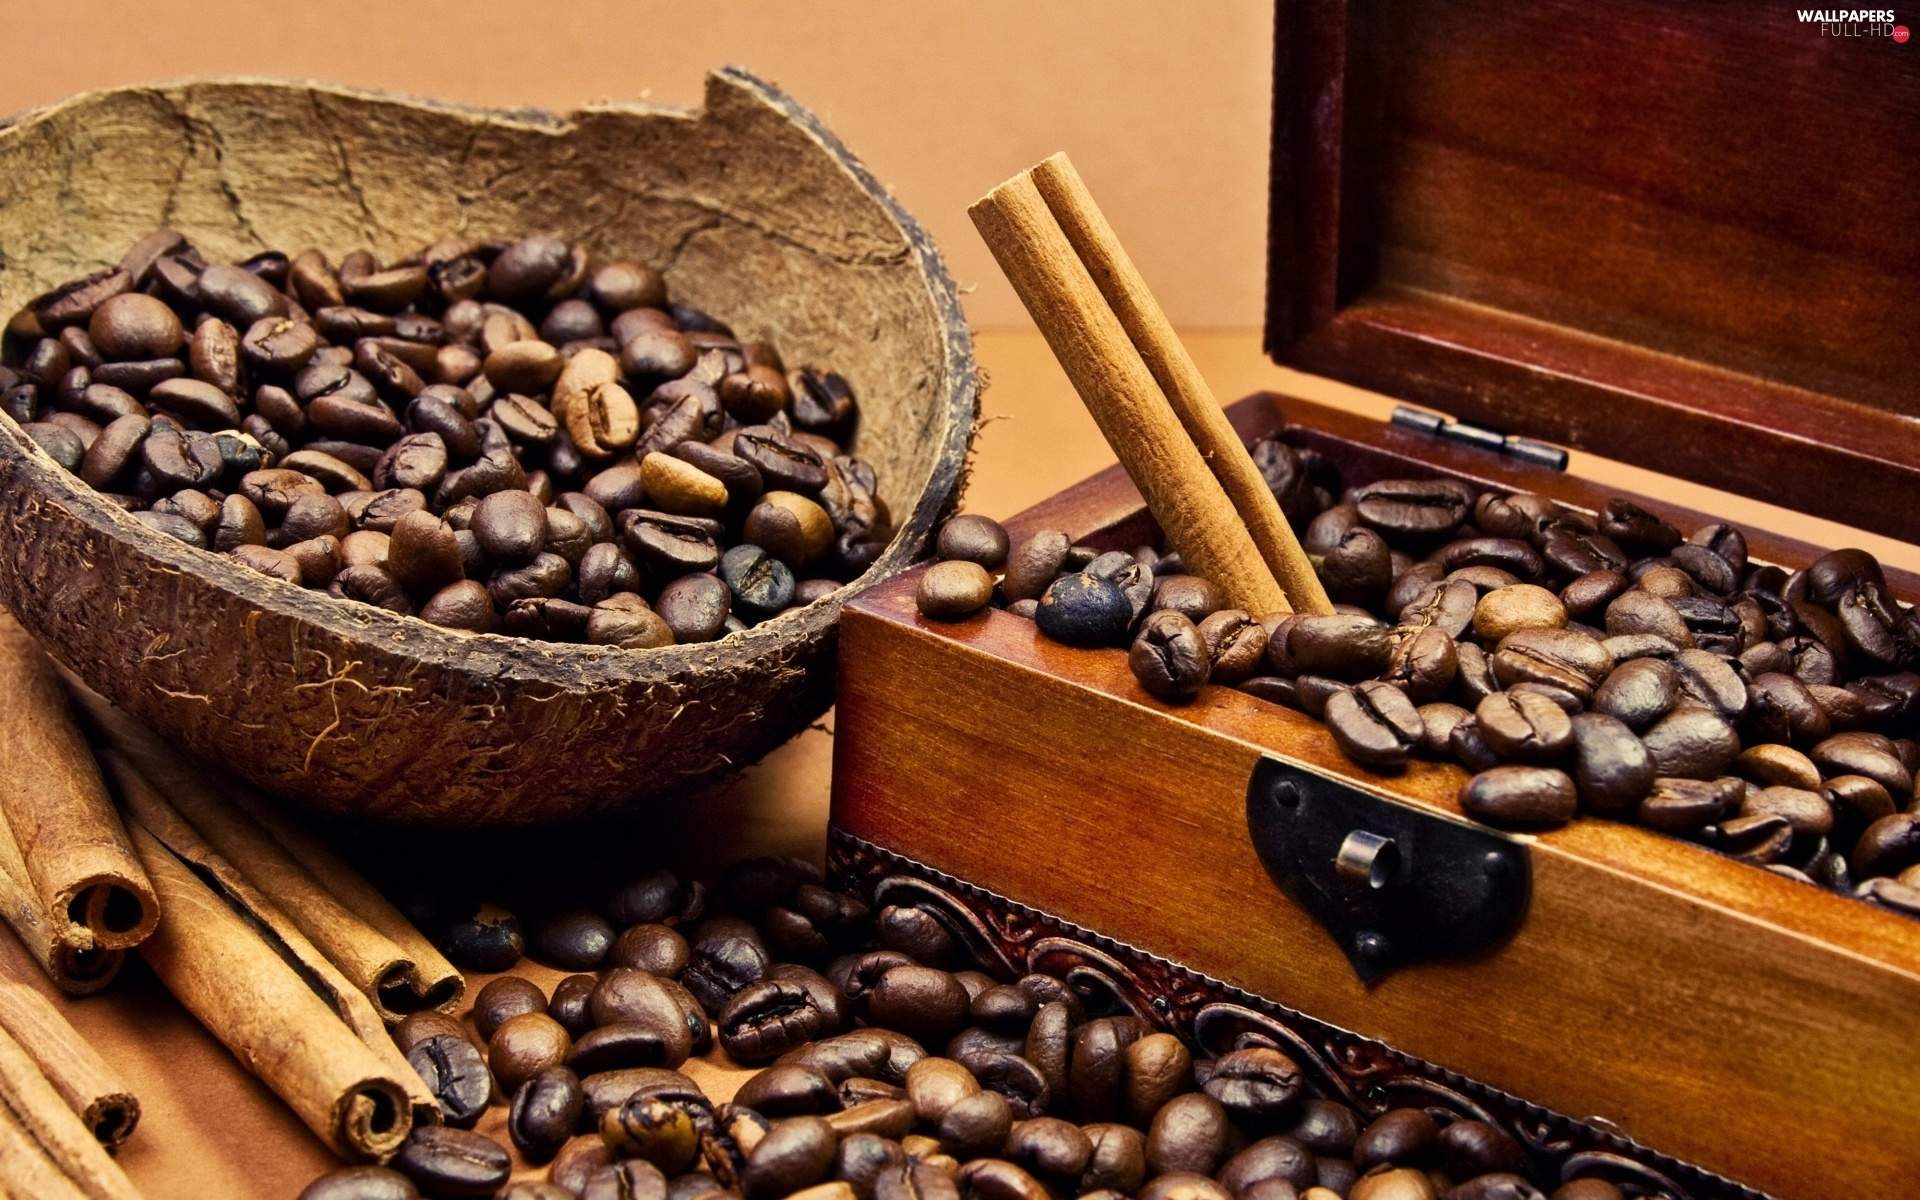 box, wood, grains, cinnamon, coffee